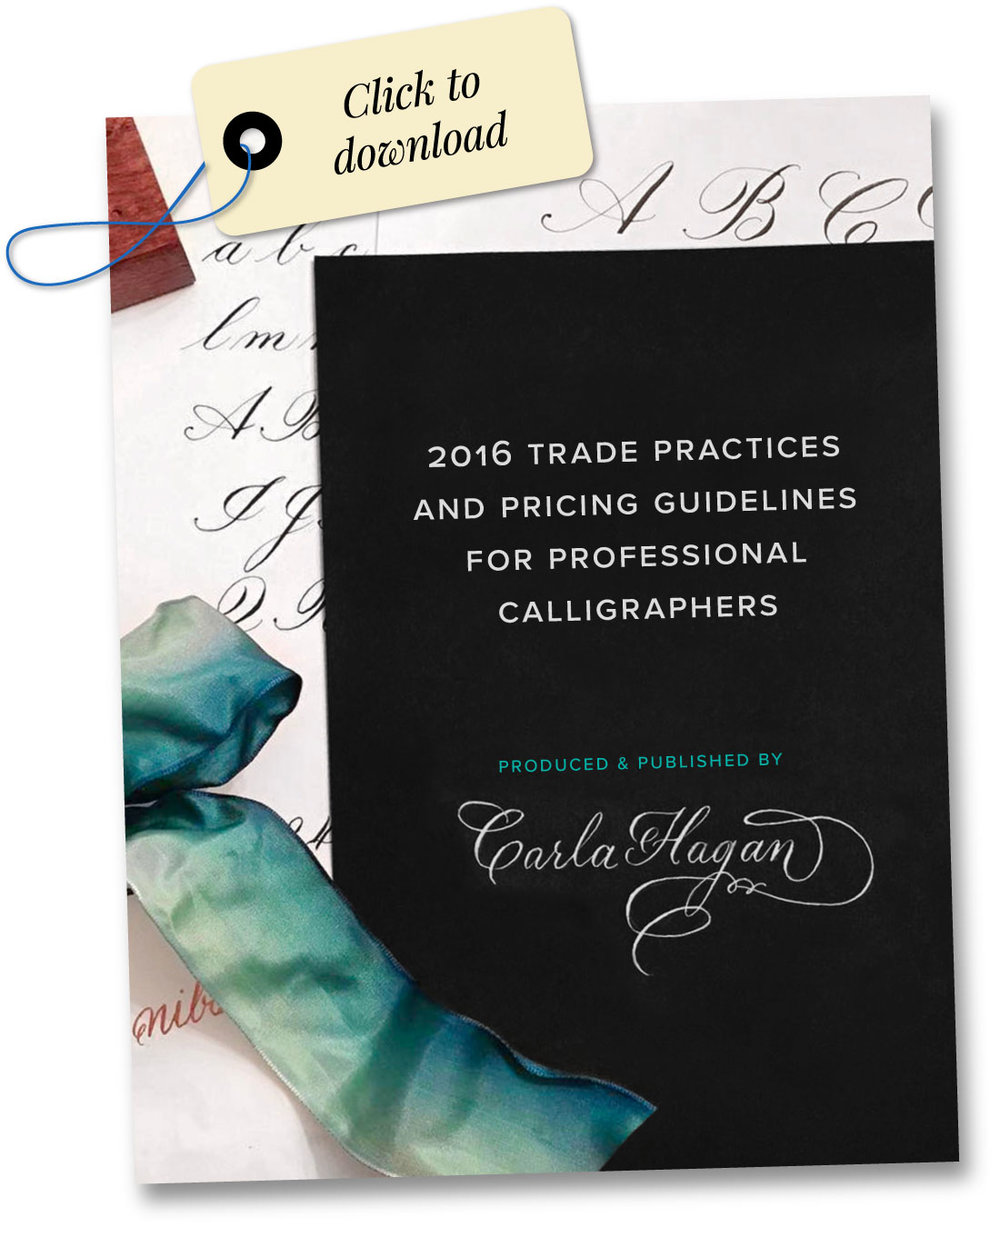 2016 Trade Practices and Pricing Guidelines for Professional Calligraphers by Carla Hagan